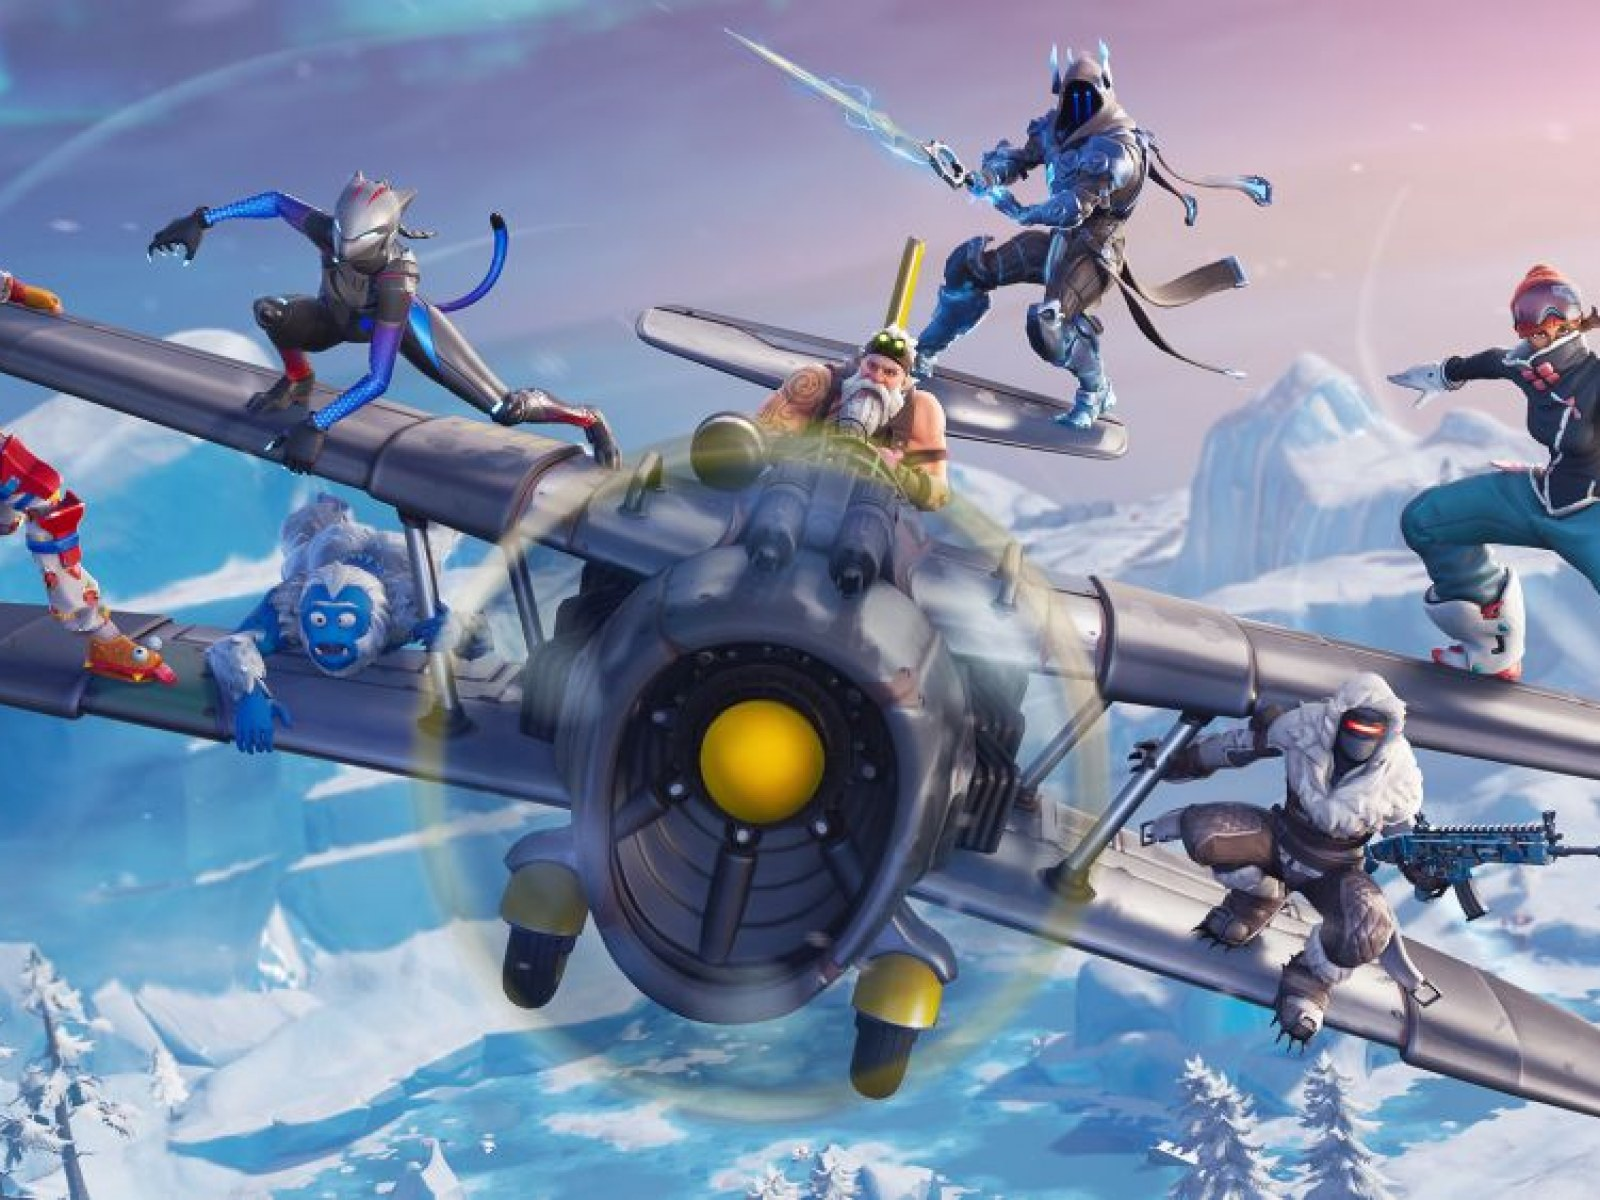 Fortnite' Season 8 Start Date Confirmed, Planes Removed and More in